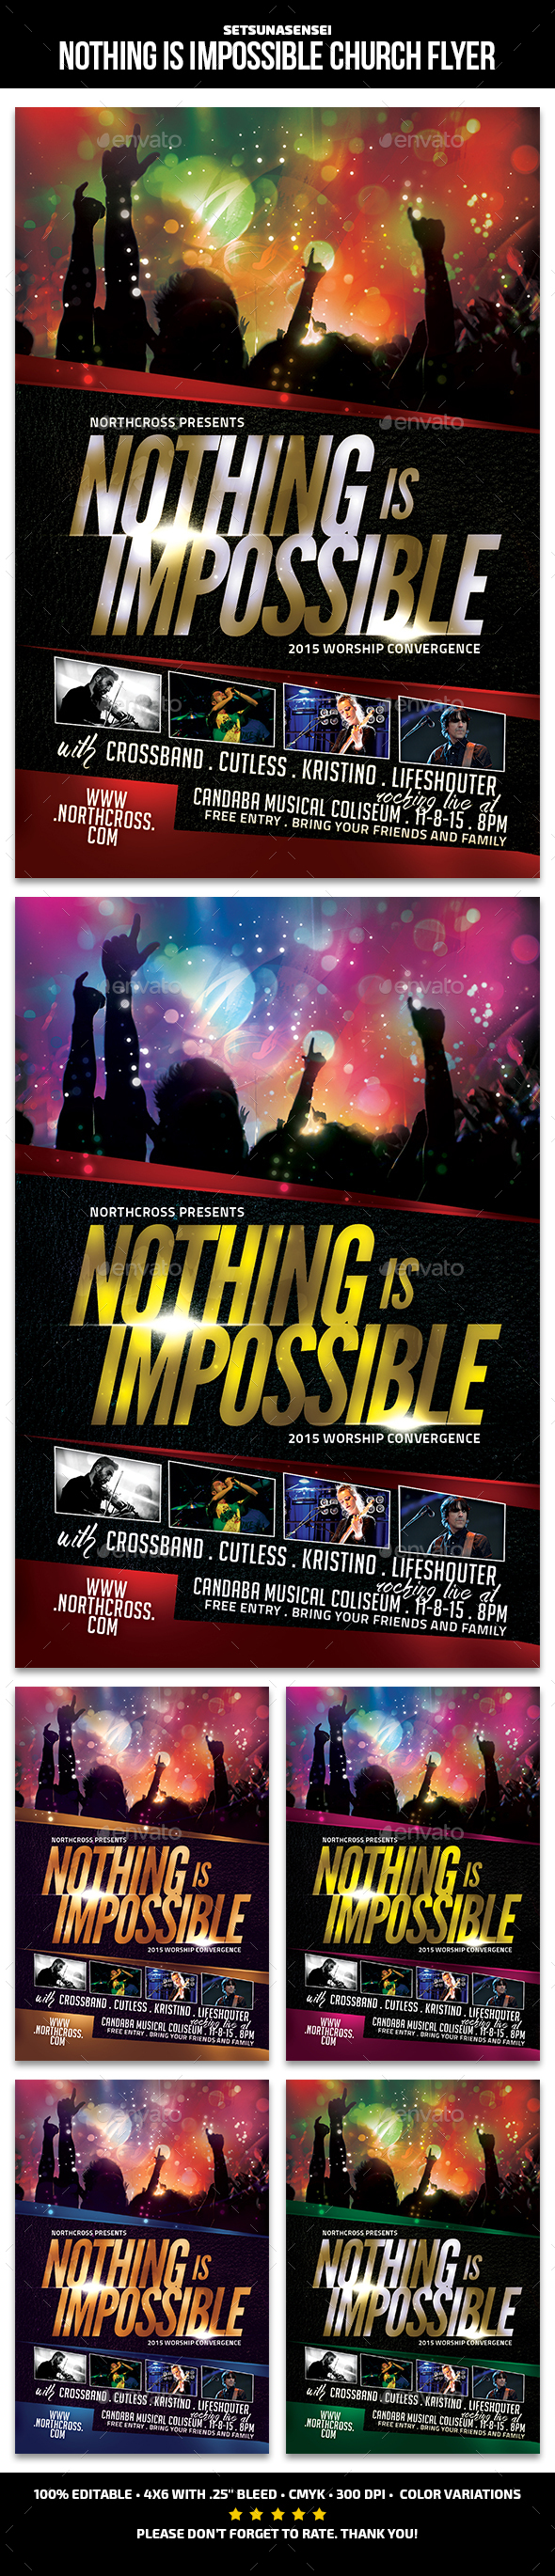 Nothing Is Impossible Church Flyer - Church Flyers